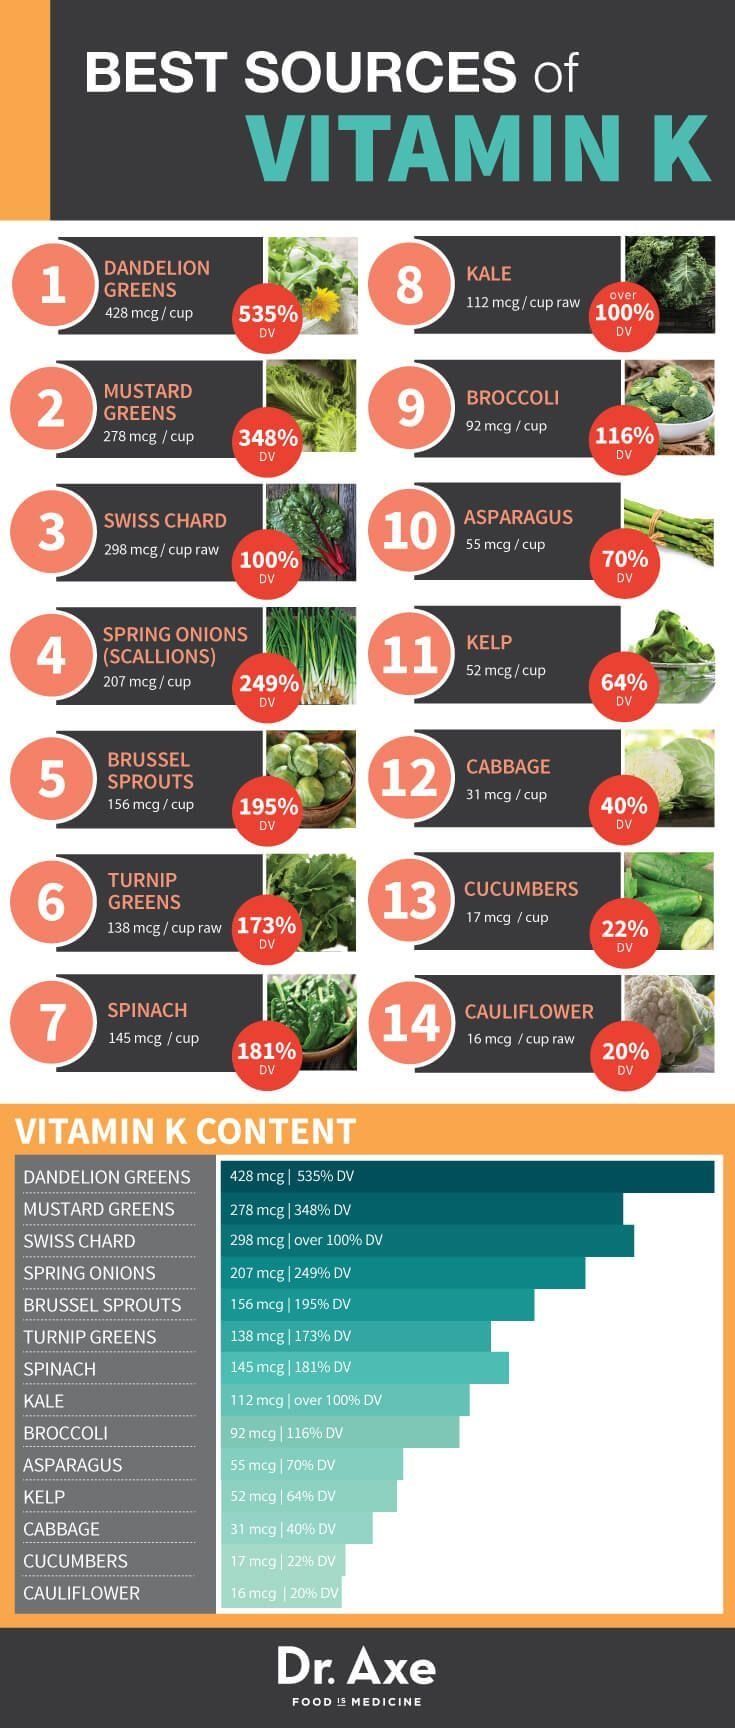 Vitamin K aids in bone and heart health, blood clotting, helps brain function, metabolism, and protects against cancer. That is why a vitamin K deficiency